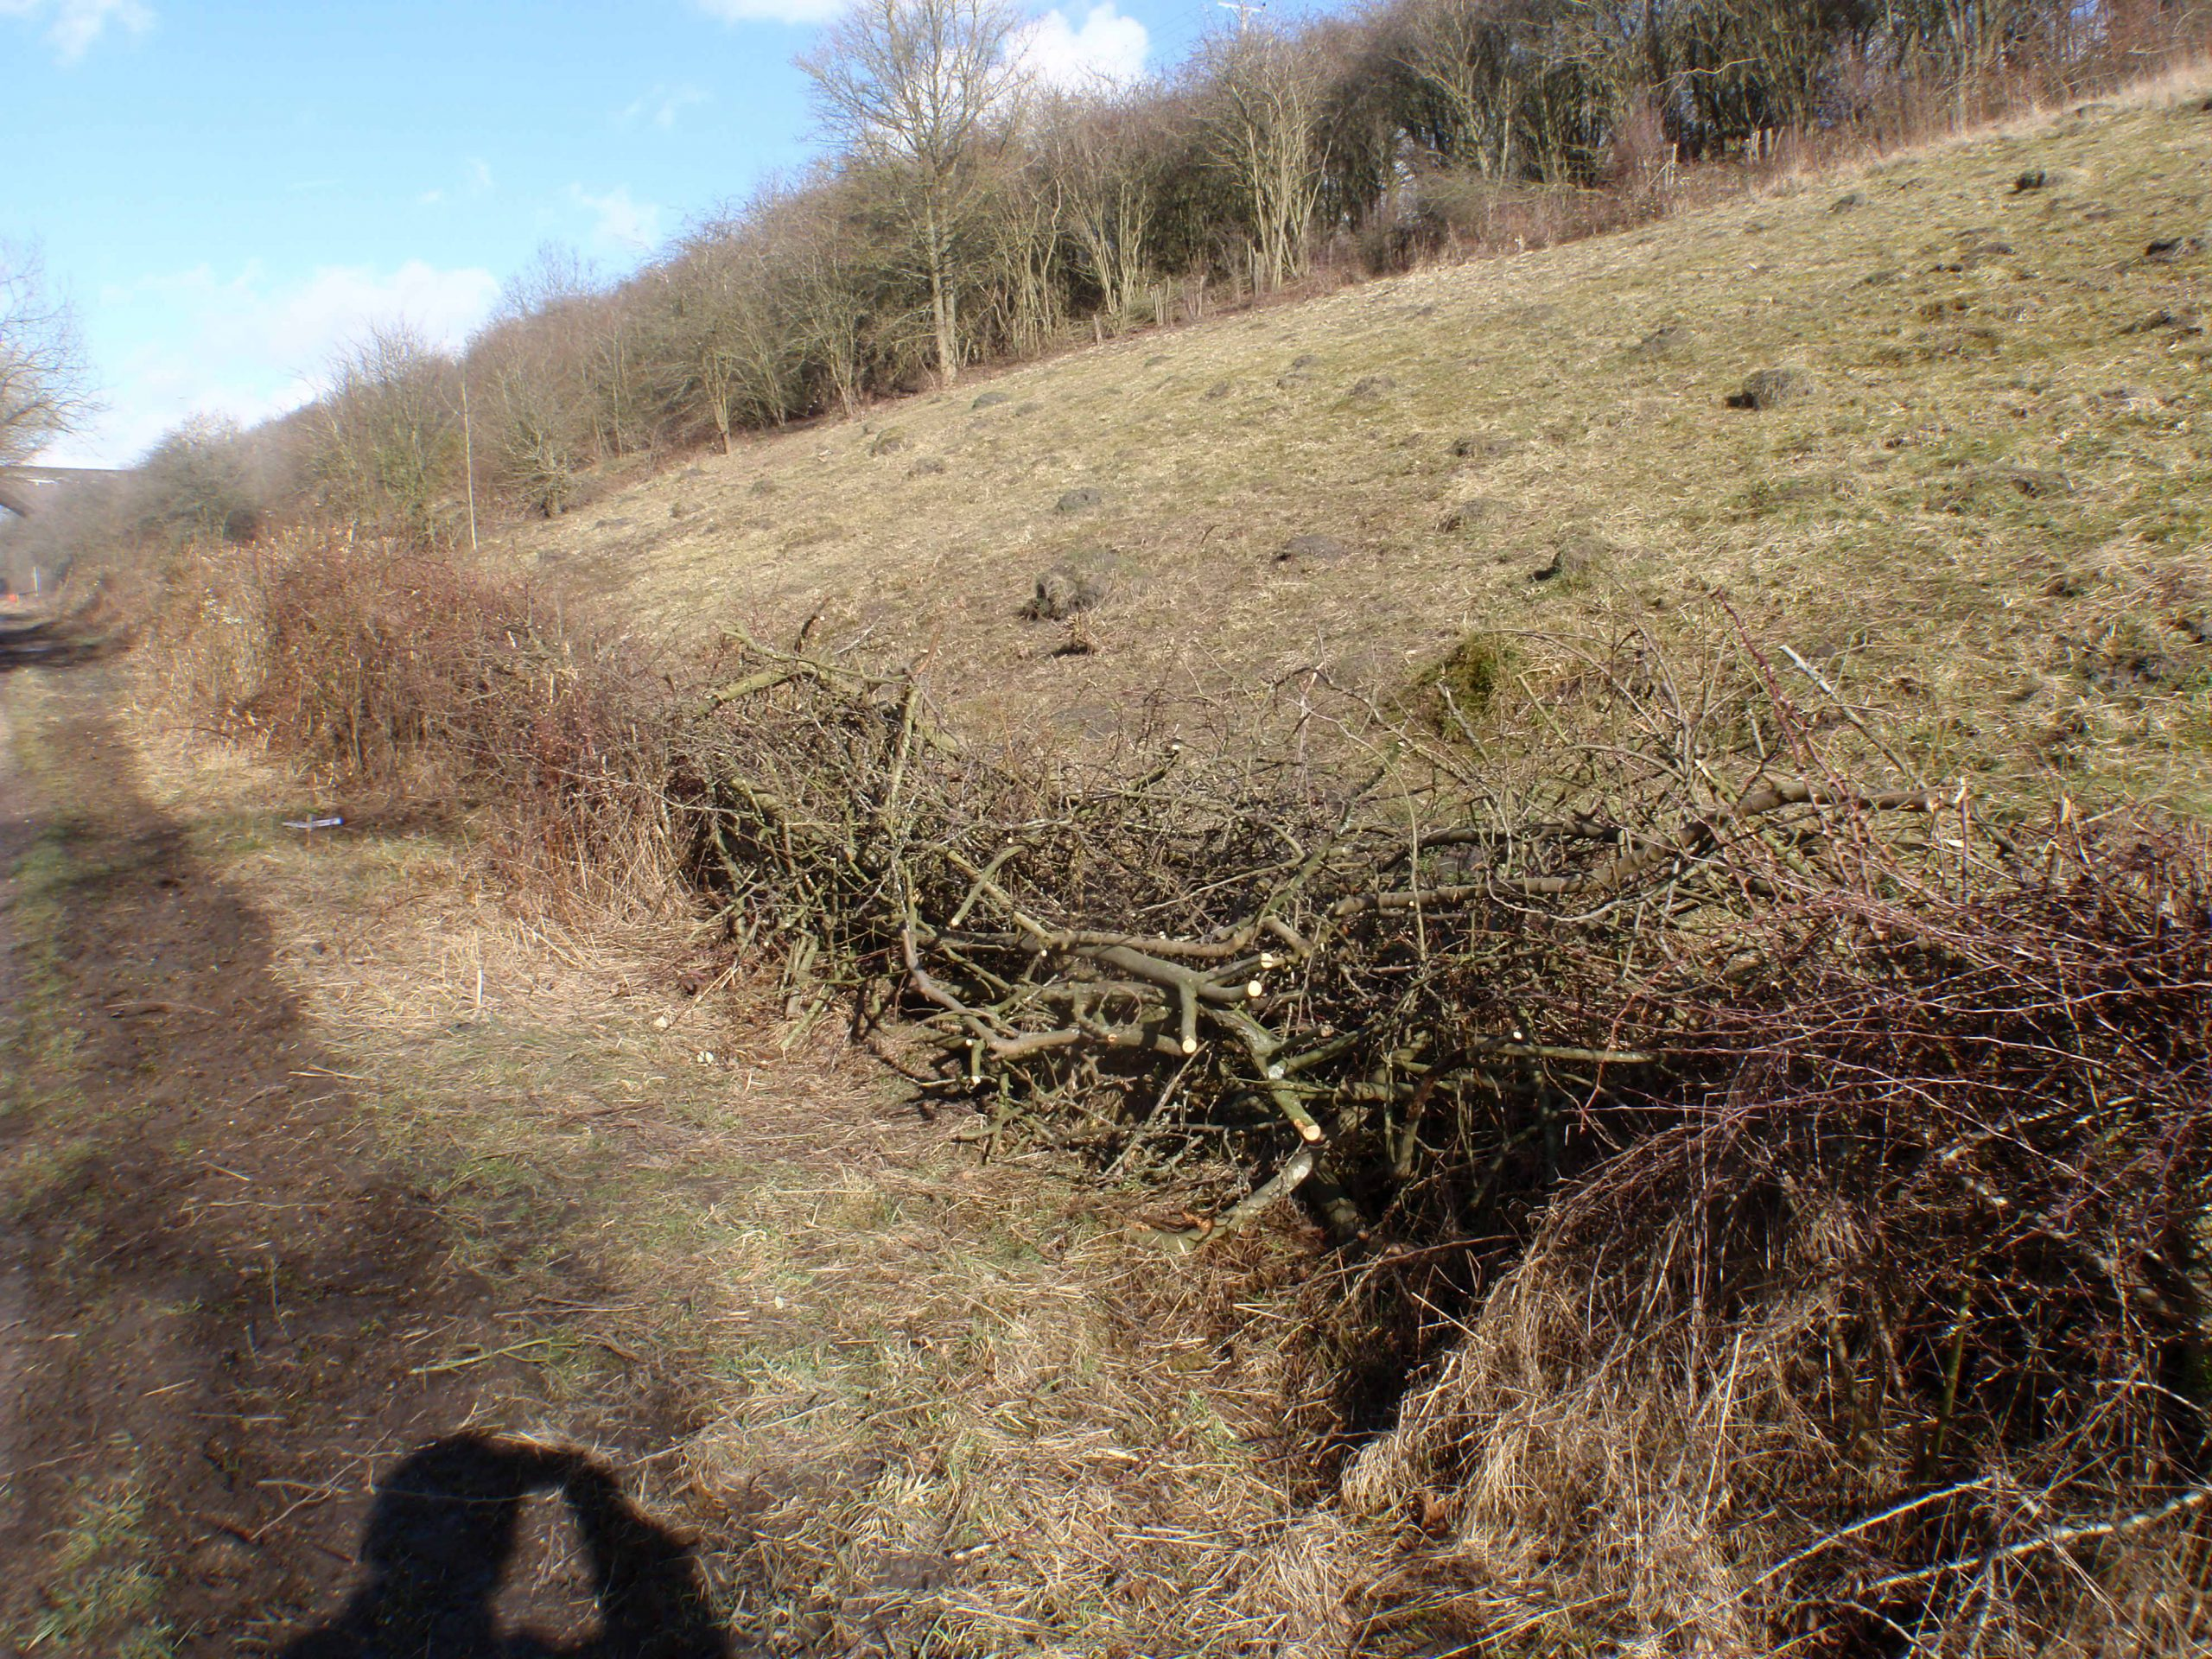 A not very tidy Dead Hedge